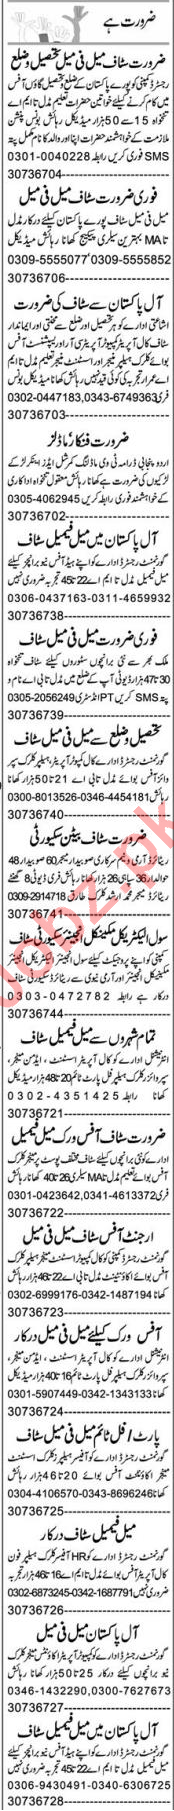 Insurance Agent & Receptionist Jobs 2020 in Lahore